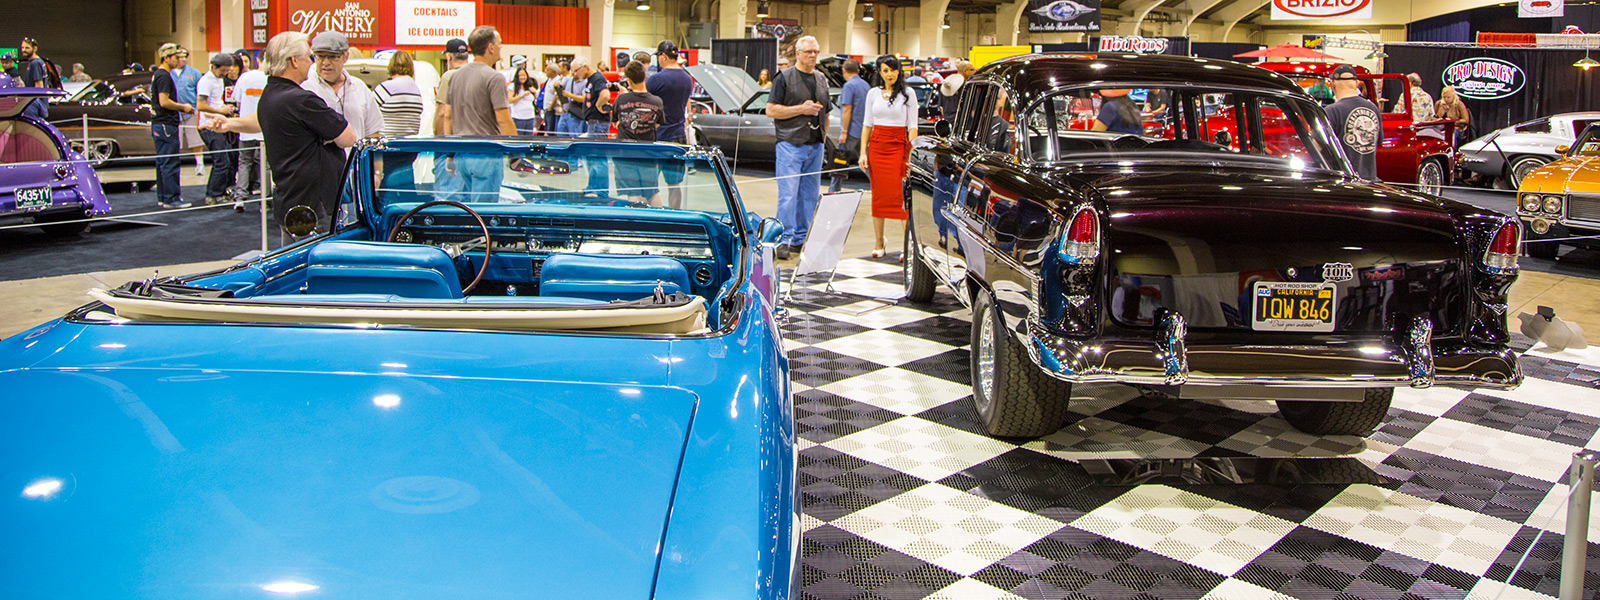 Grand National Roadster Show at Fairplex